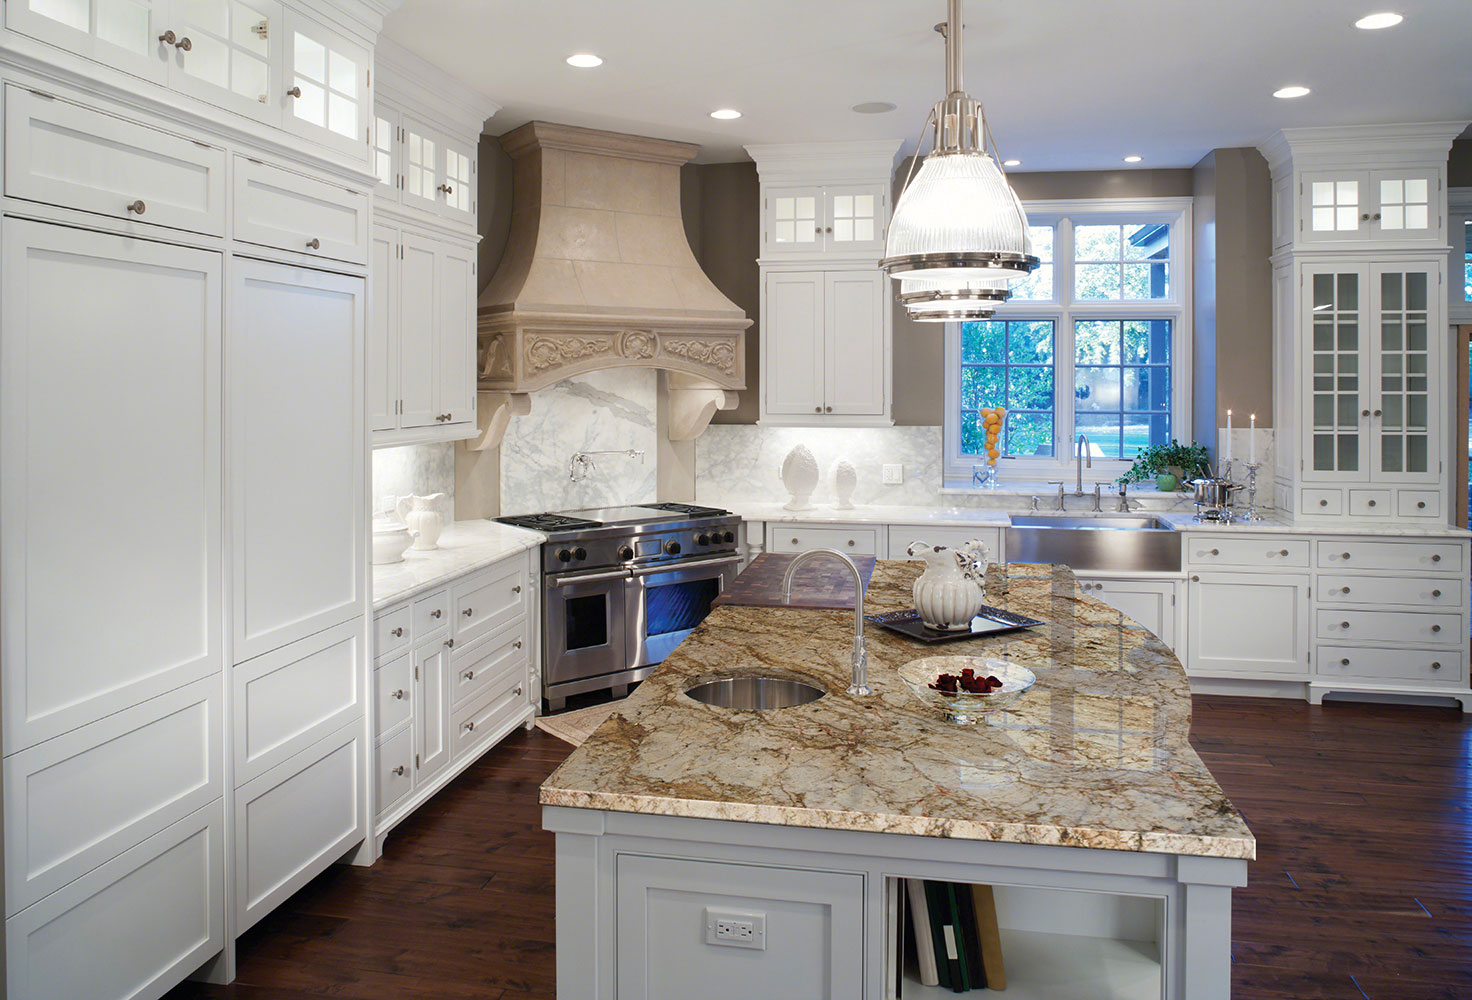 2015 Hot Kitchen Trends Part 1 Cabinets amp Countertops